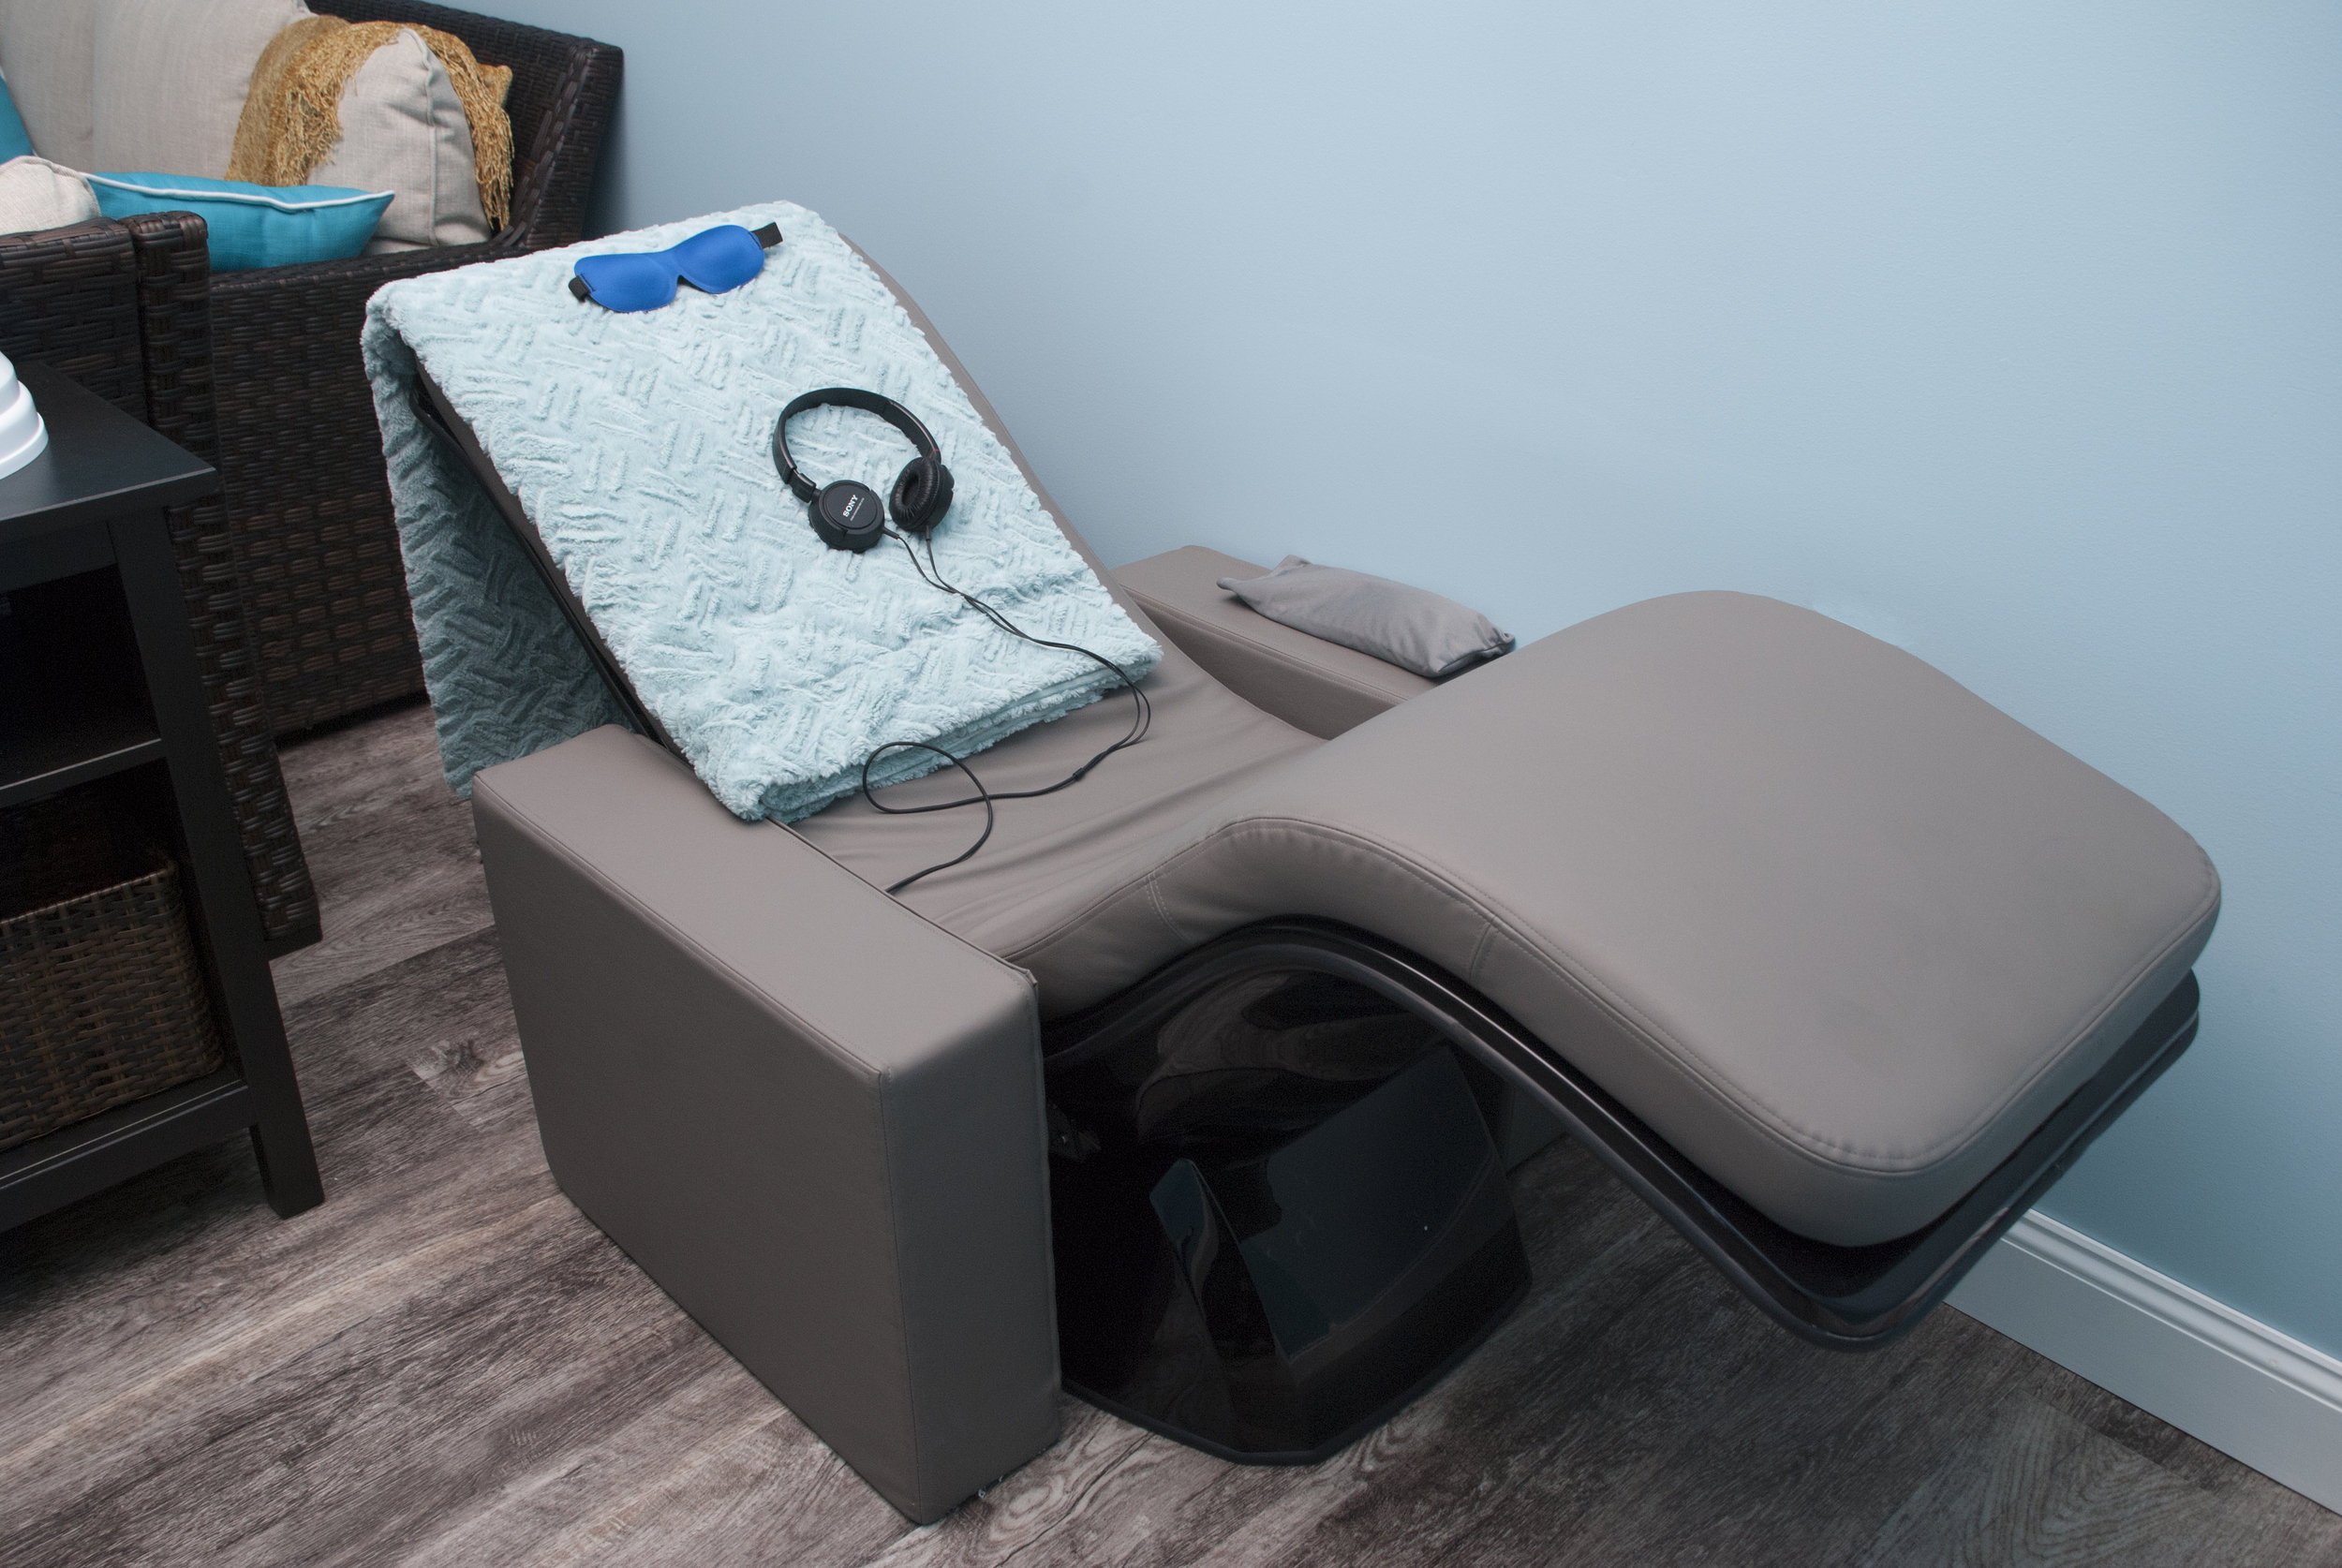 The Body Sound Chair uses vibration with sound to create a deep state of relaxation and reduce stress. This can contribute to healing and positively impact stress and pain. Presented by Karen Cole. -